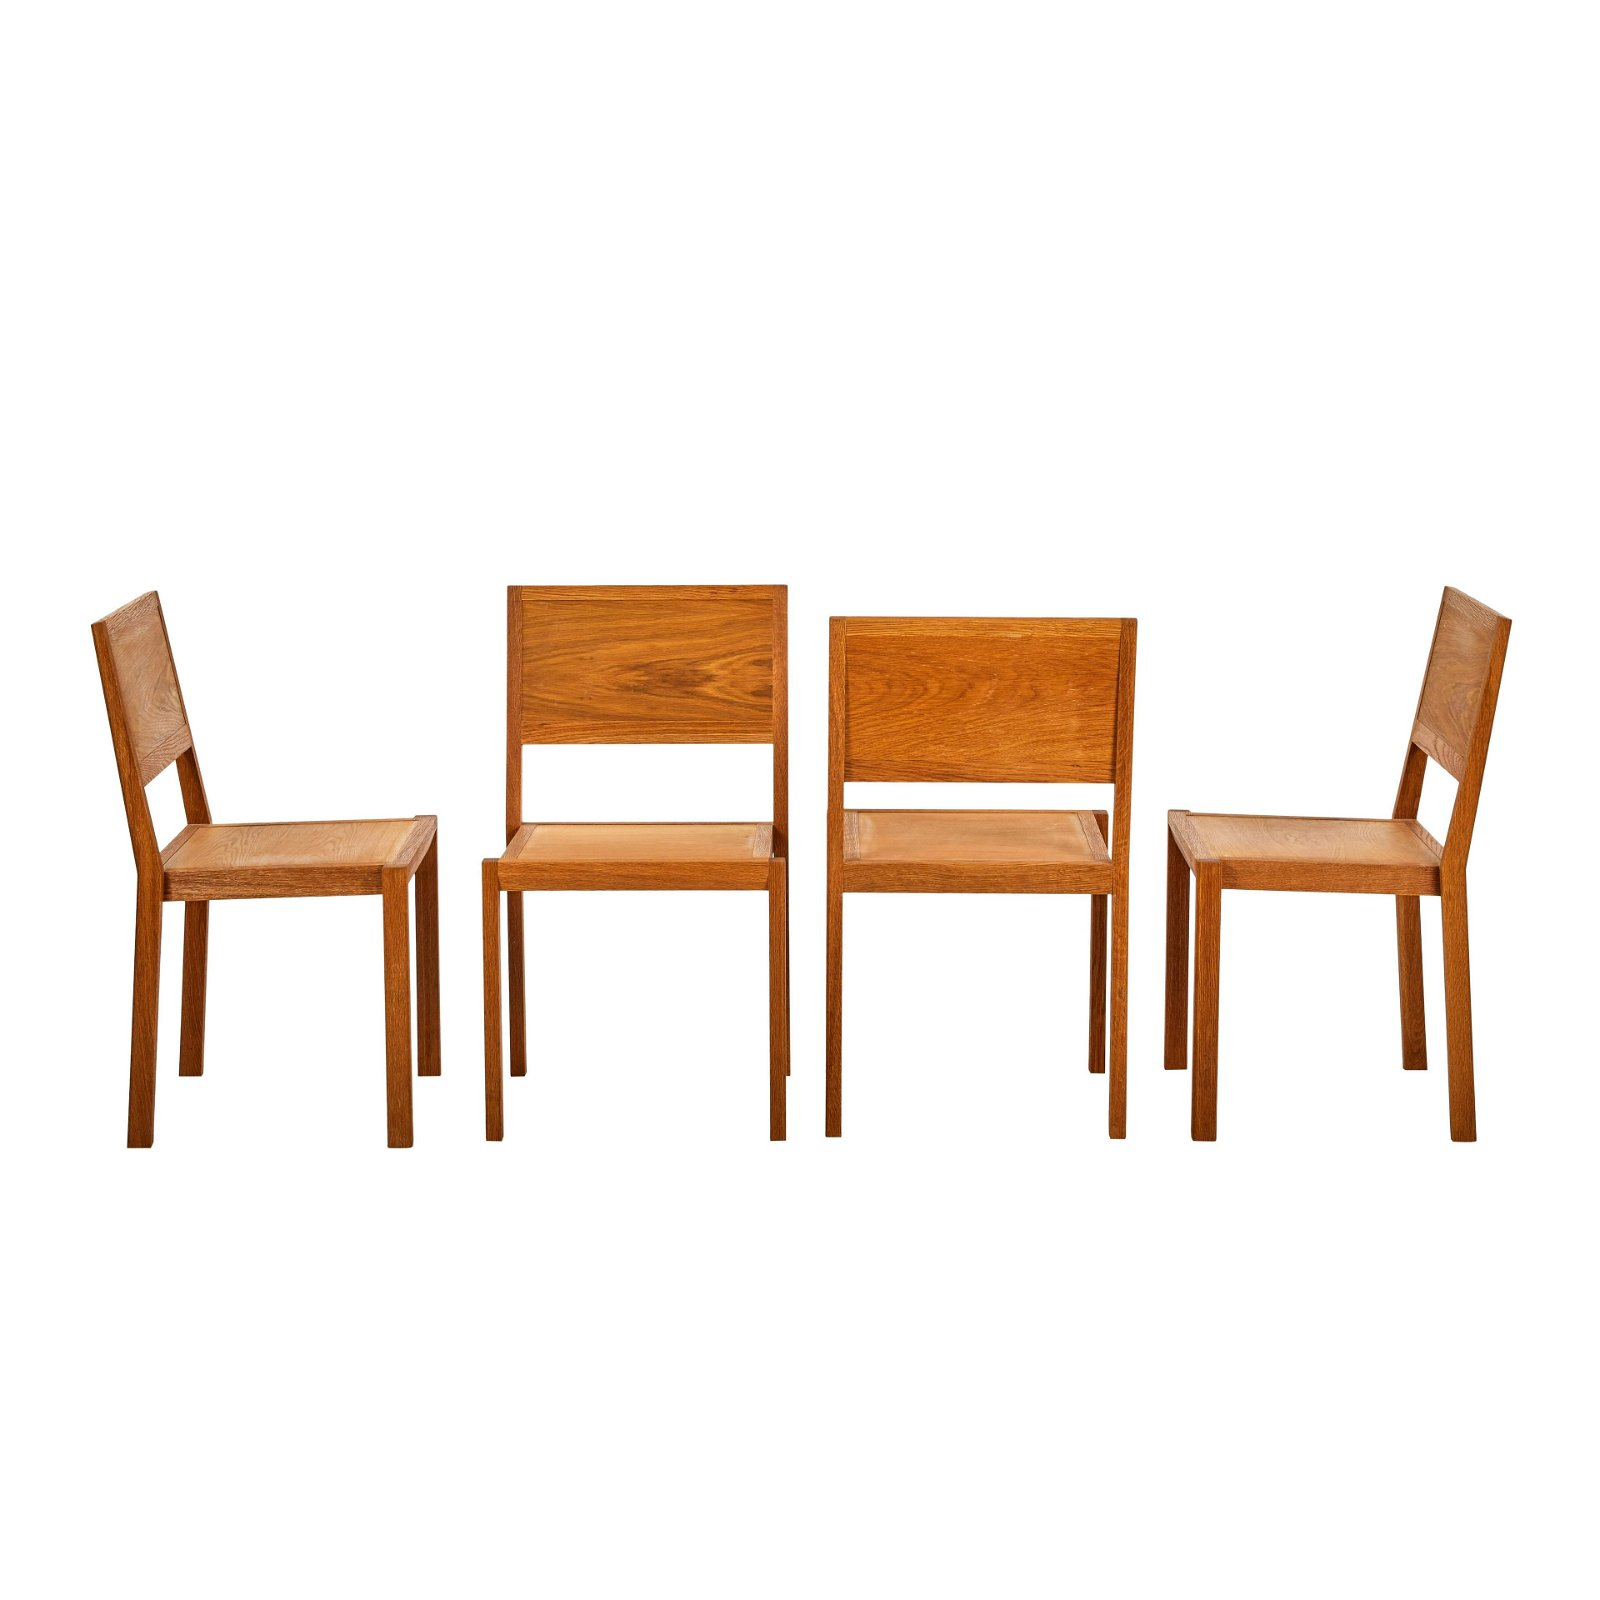 Alvar Aalto Stacking Chairs (4)